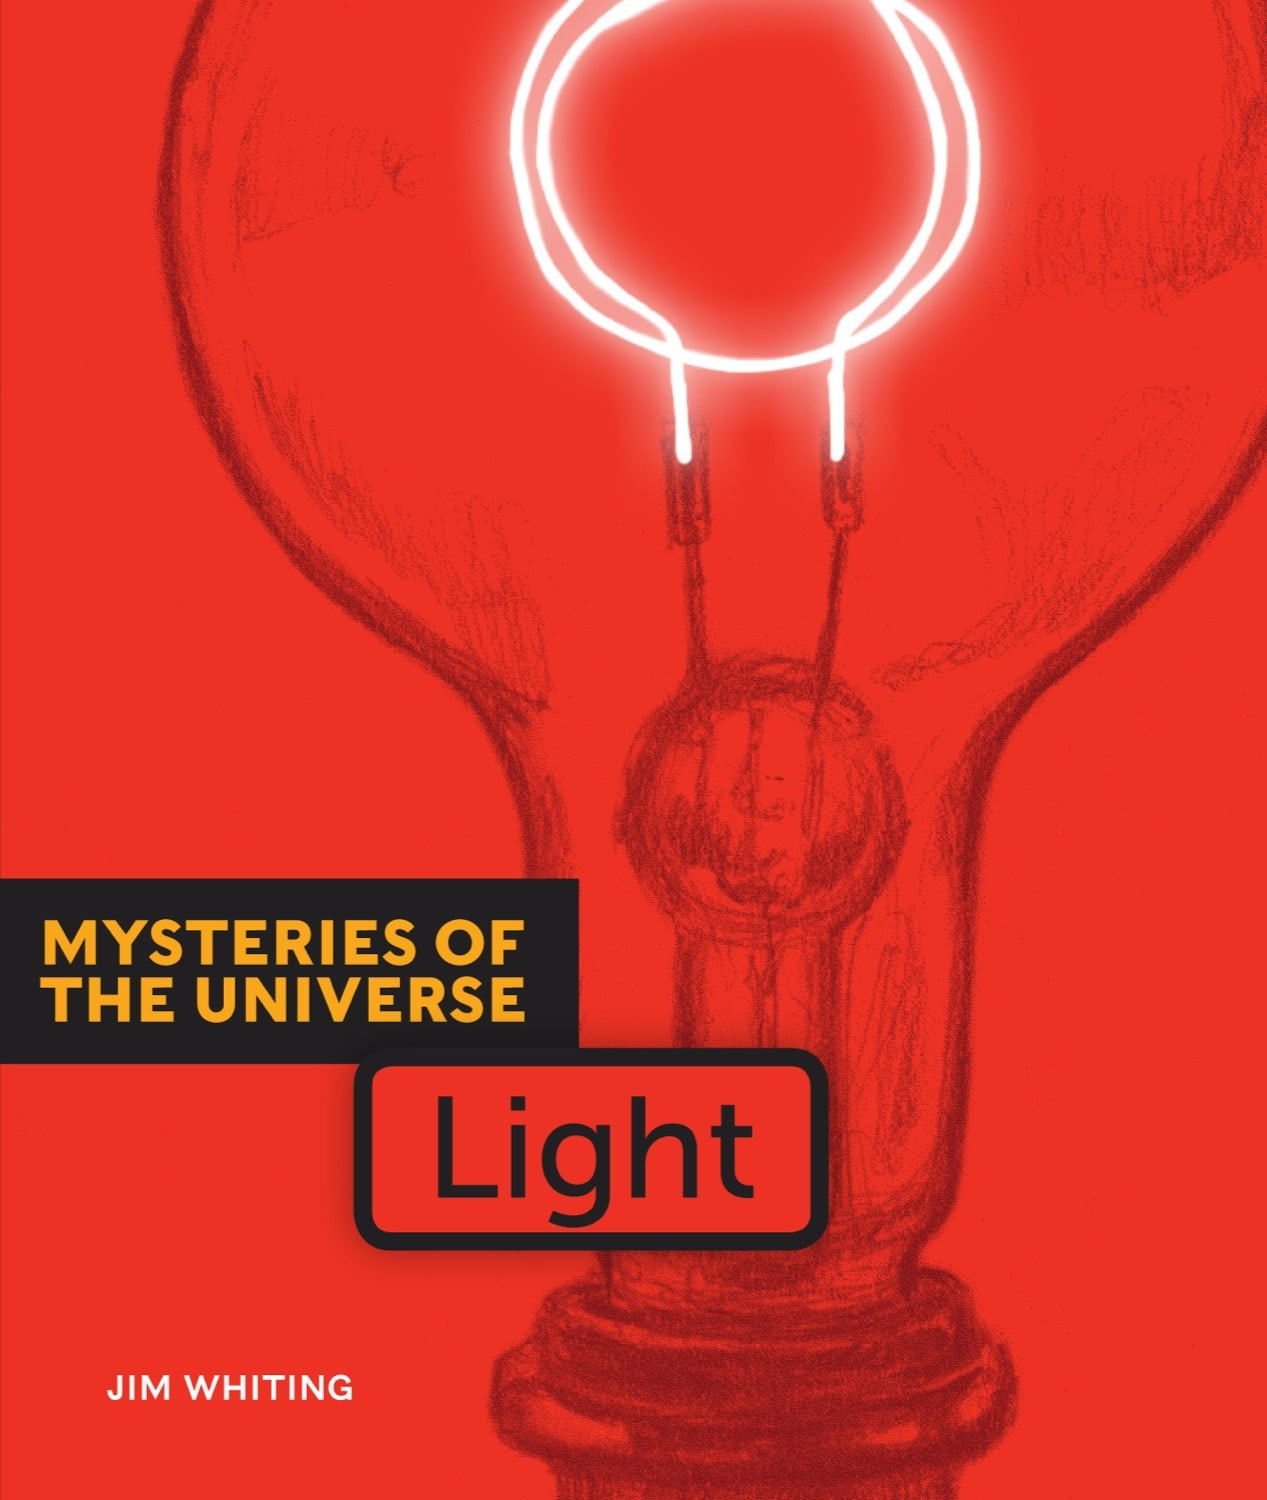 Mysteries of the Universe: Light